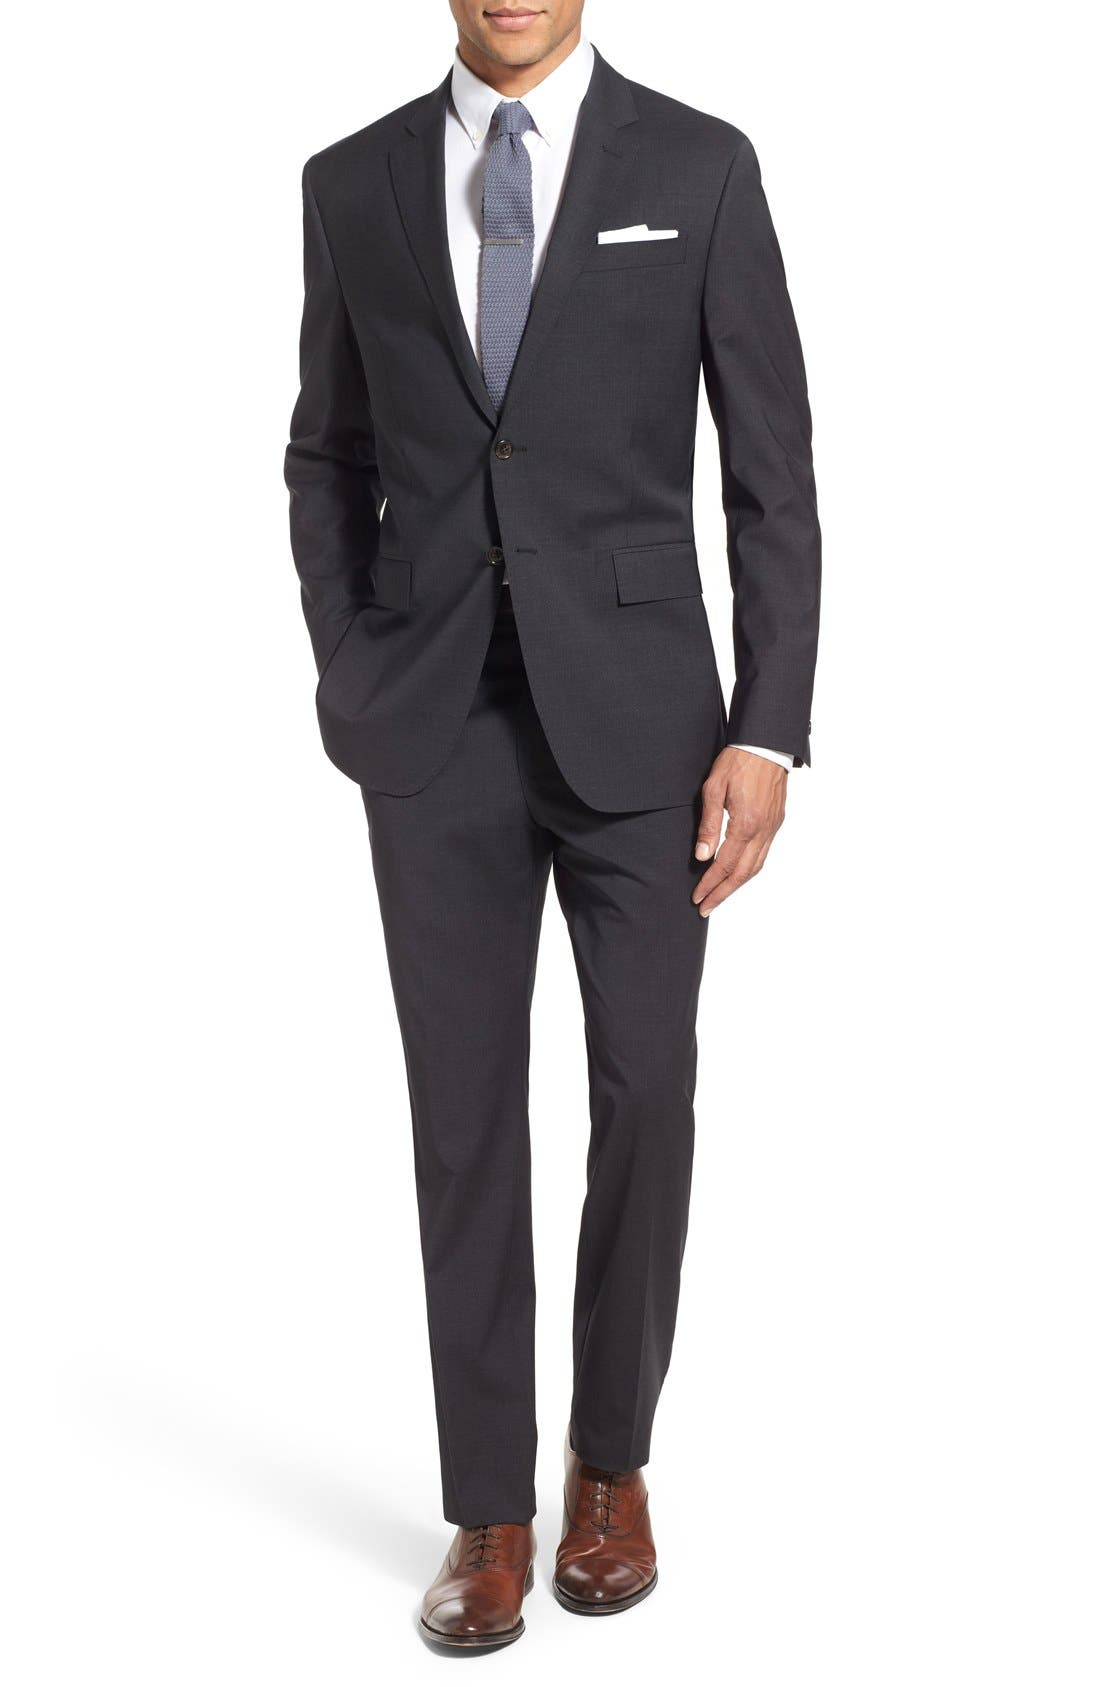 Main Image - Todd Snyder White Label 'May Fair' Trim Fit Solid Stretch Wool Suit